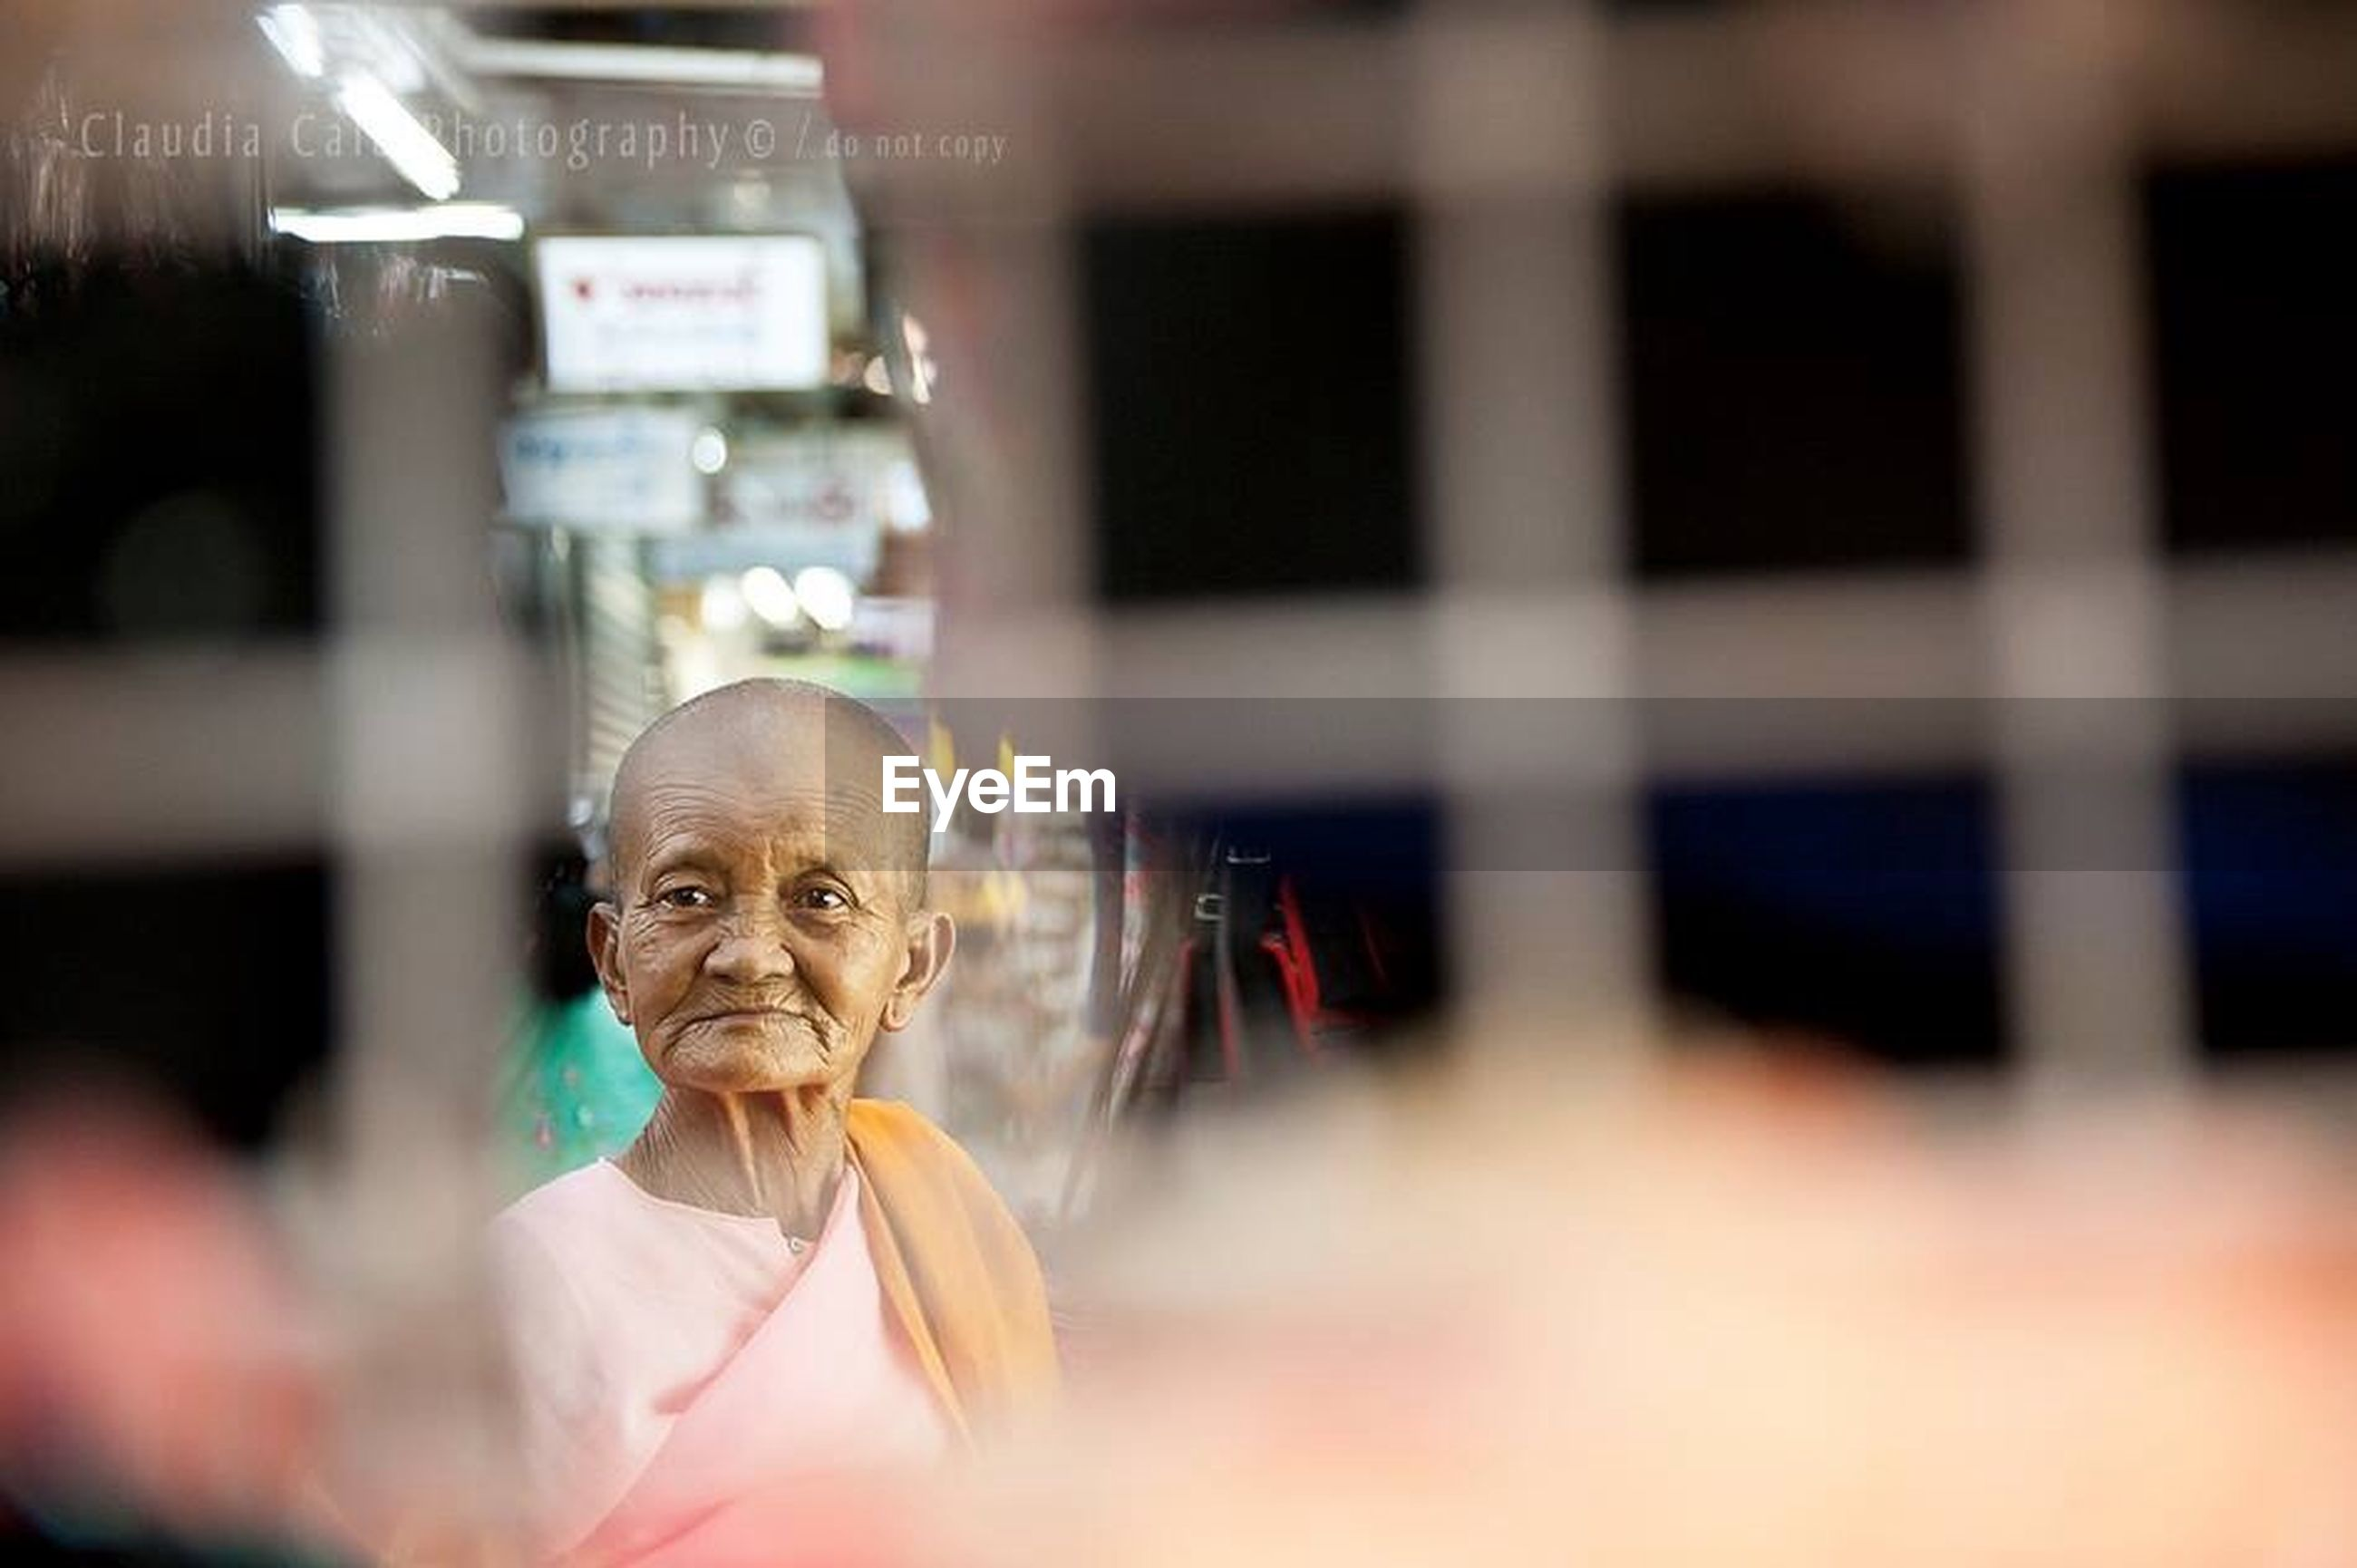 focus on foreground, selective focus, lifestyles, indoors, leisure activity, close-up, celebration, person, incidental people, illuminated, cultures, human representation, art and craft, arts culture and entertainment, tradition, creativity, day